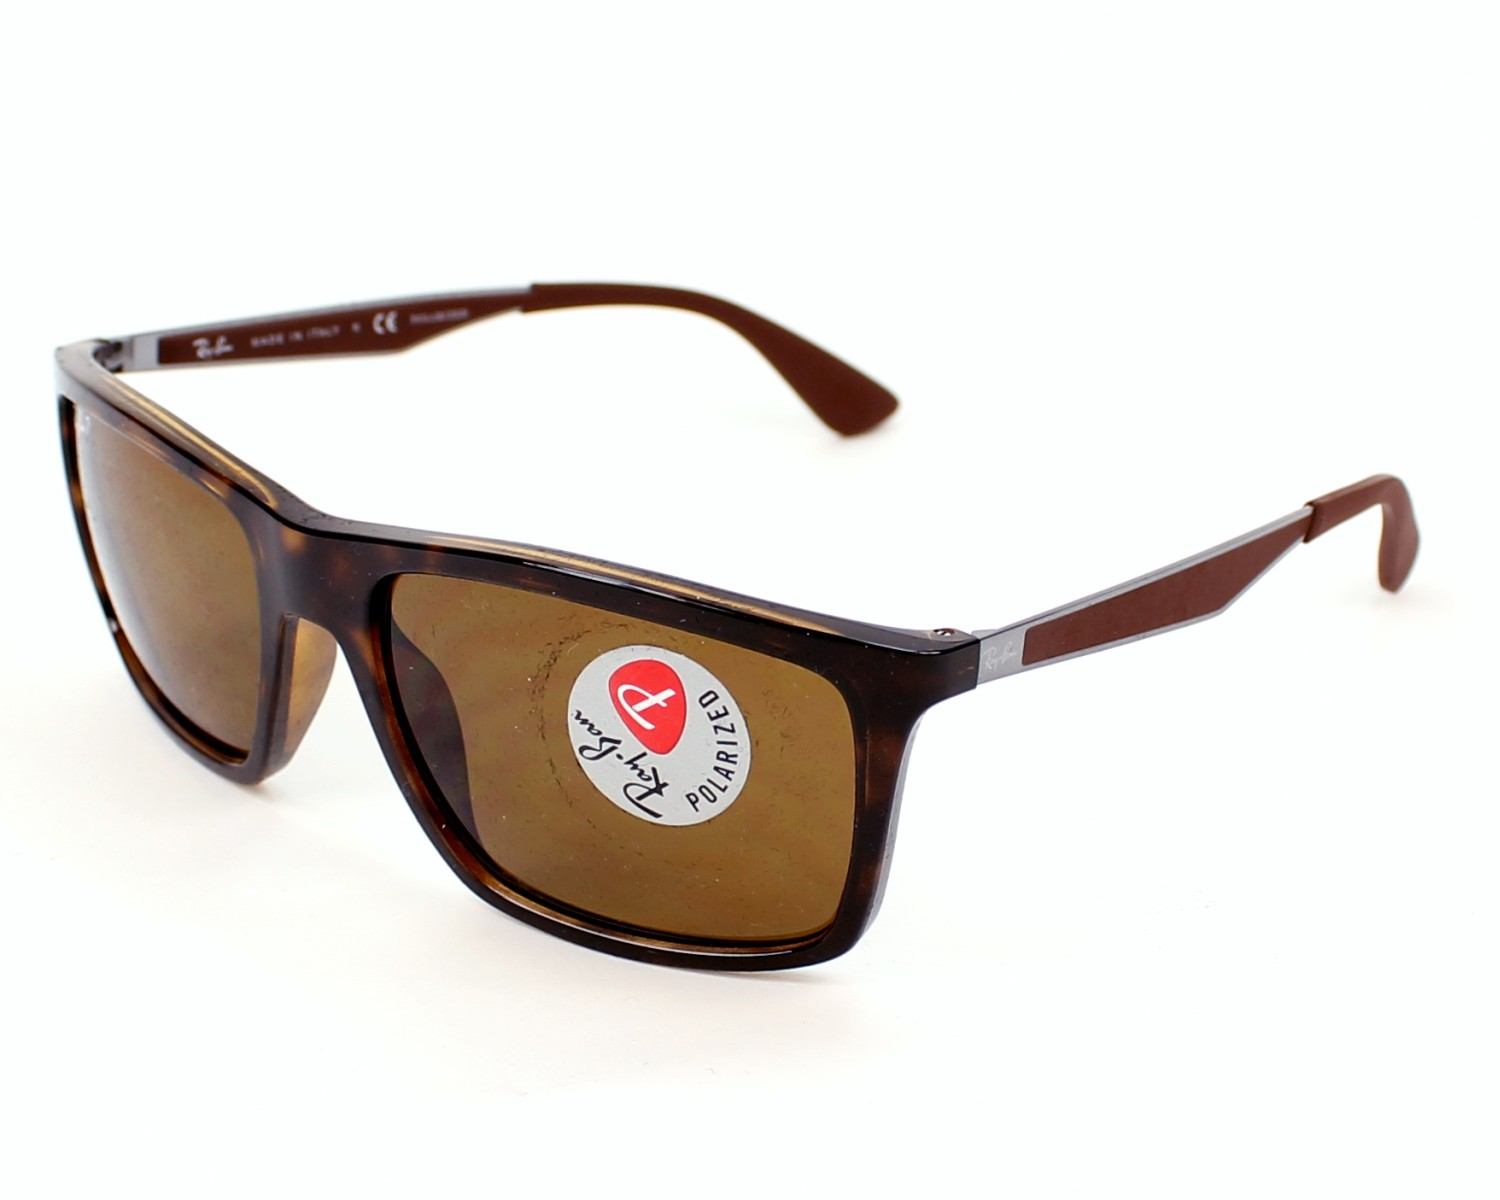 86d65d38bfe Sunglasses Ray-Ban RB-4228 710 83 58-18 Havana Brown profile